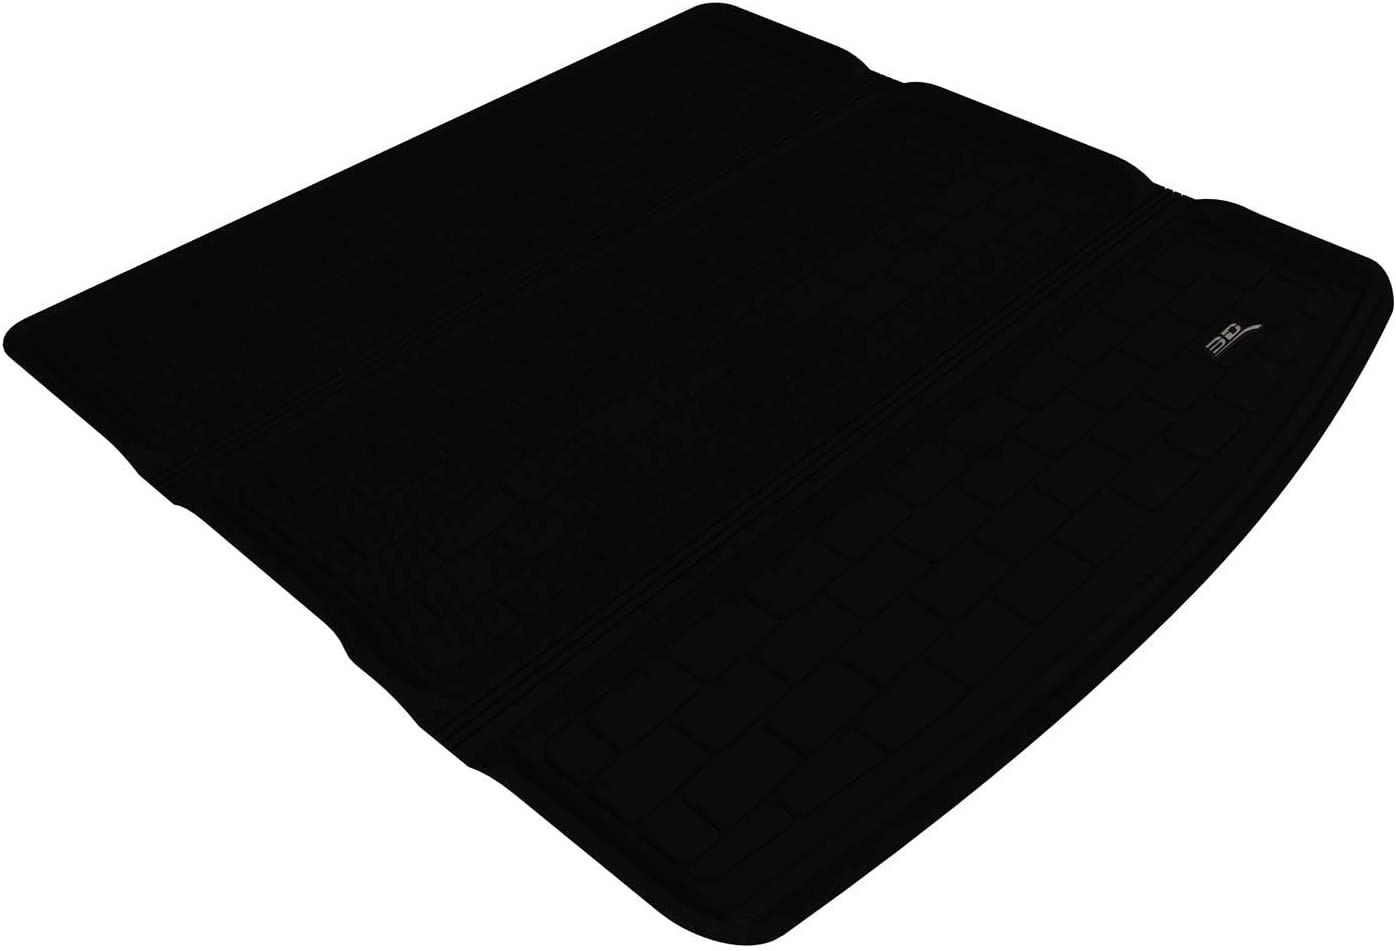 Kagu Rubber Black 3D MAXpider Cargo Custom Fit All-Weather Floor Mat for Select Dodge Journey Models